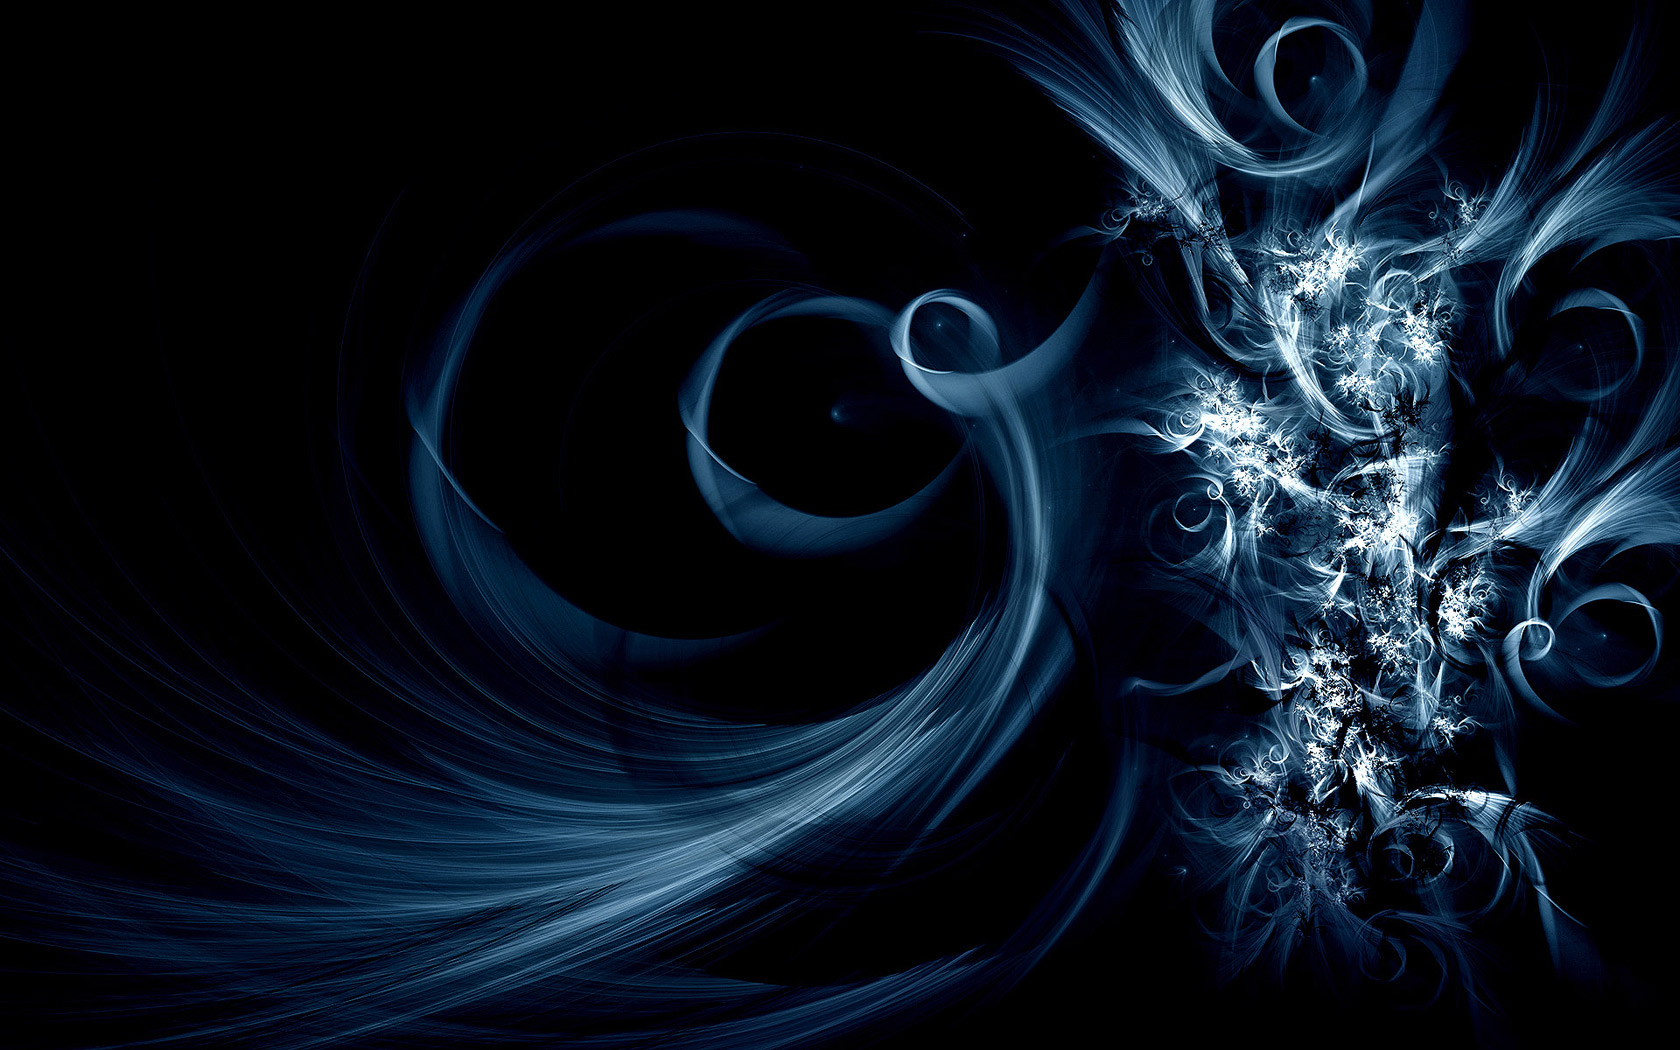 Widescreen Abstract Desktop Wallpaper Wallpaper